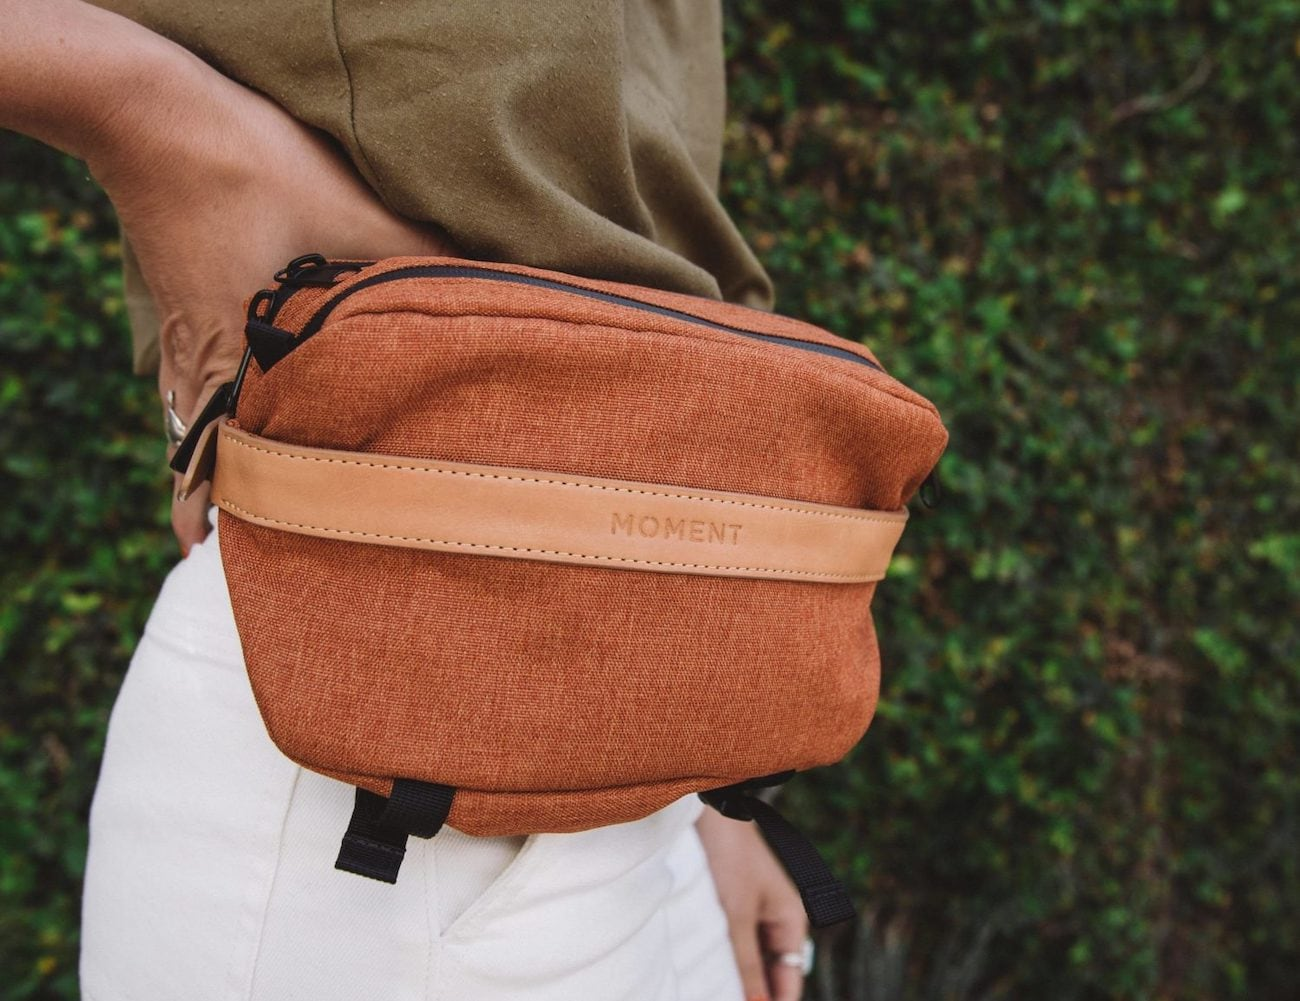 Moment Fanny Sling Day Bag is a convenient everyday bag